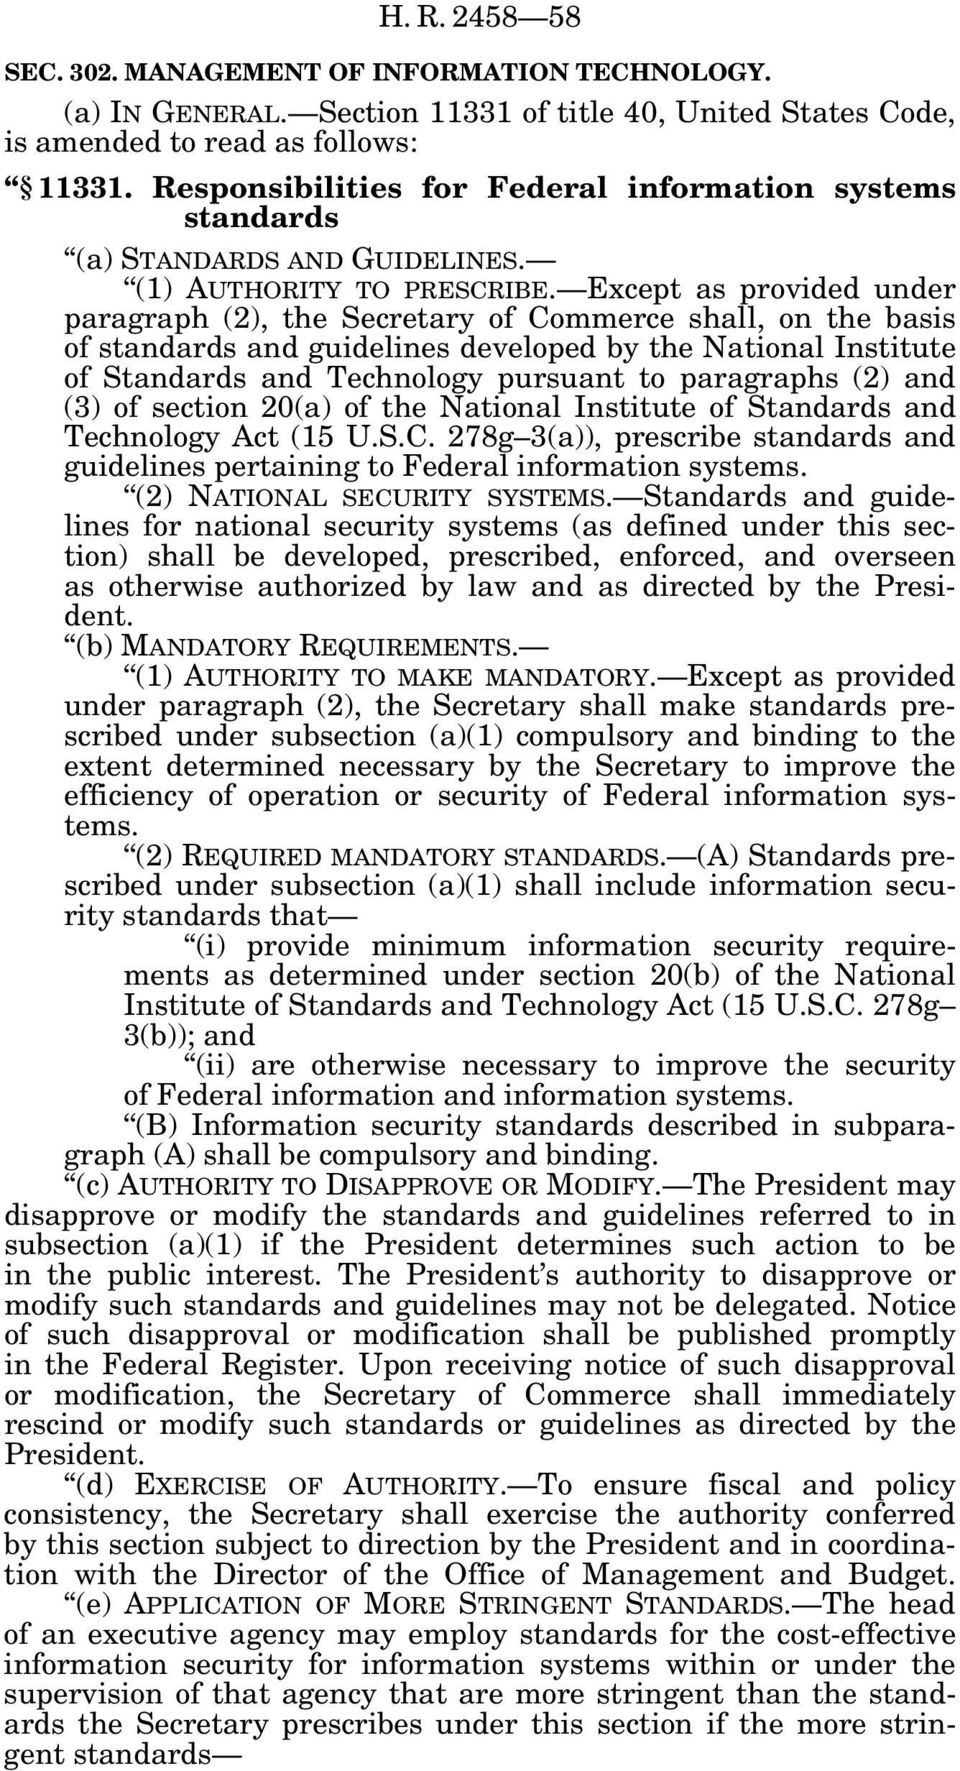 Except as provided under paragraph (2), the Secretary of Commerce shall, on the basis of standards and guidelines developed by the National Institute of Standards and Technology pursuant to